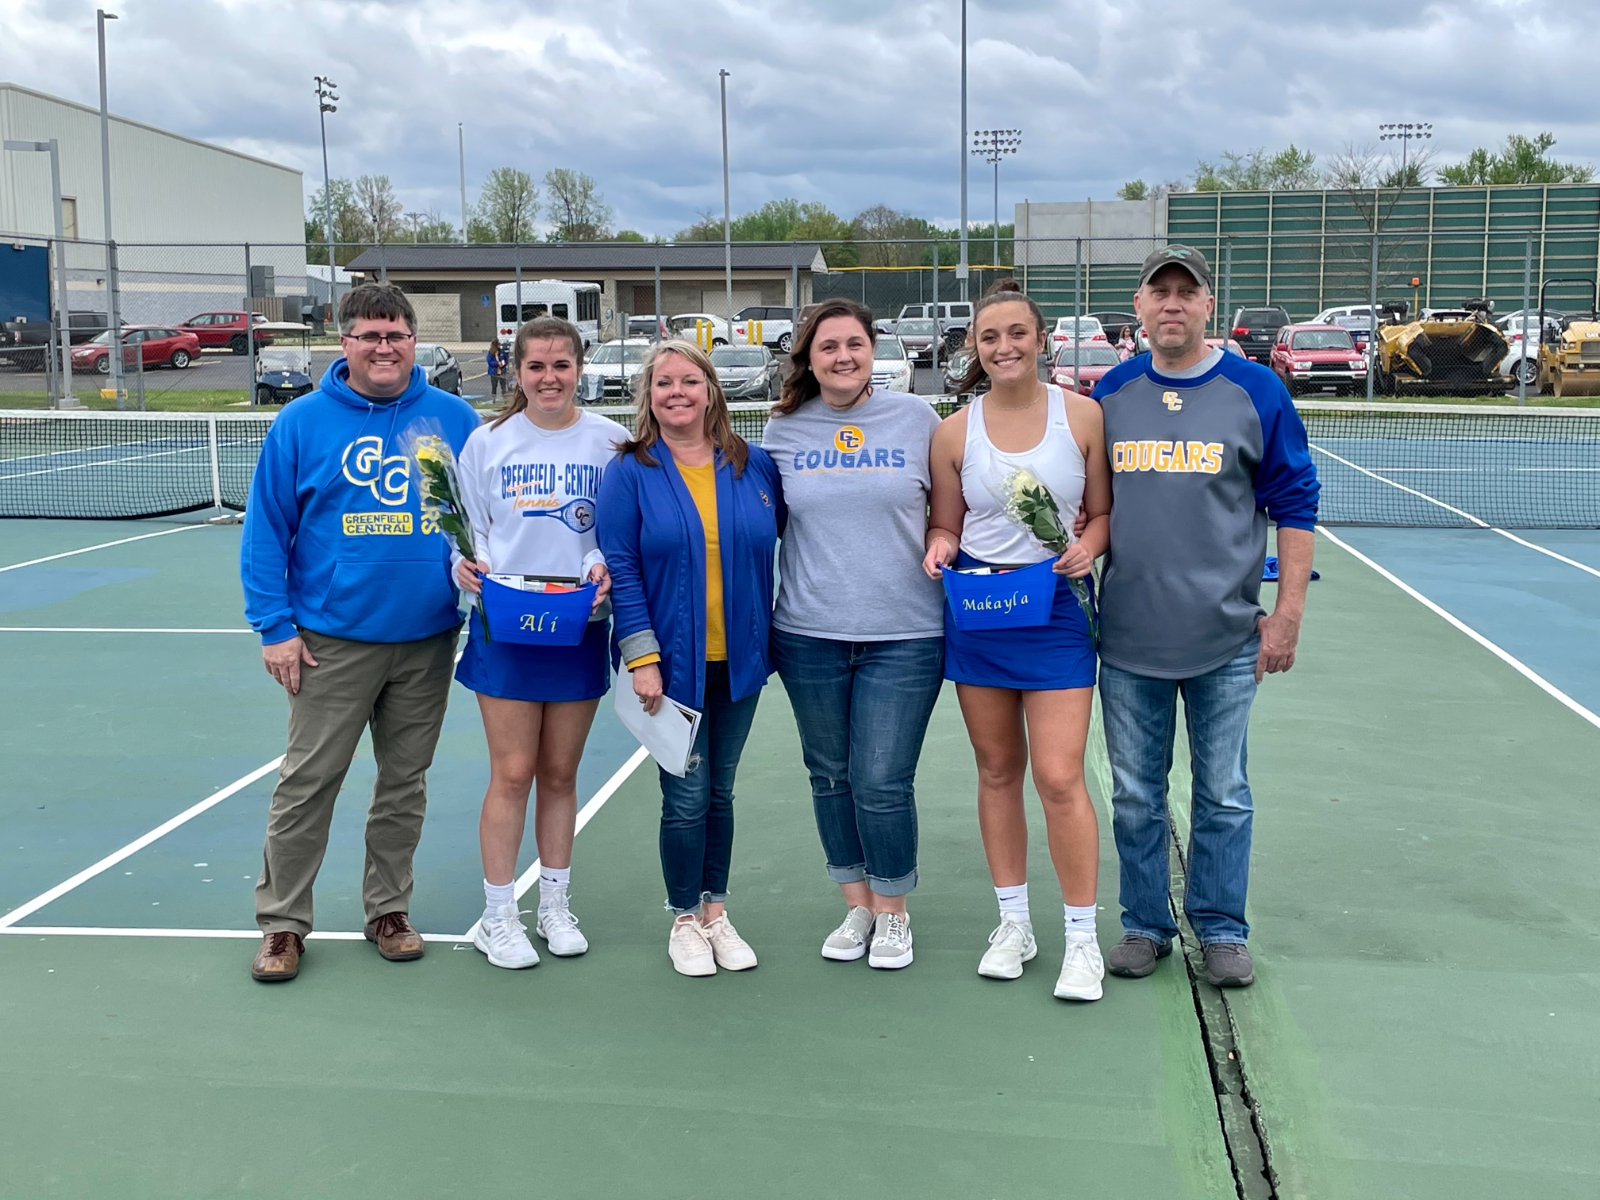 PREP ROUNDUP: Cougars celebrate senior night victory – GDR Sports: Staff Reports